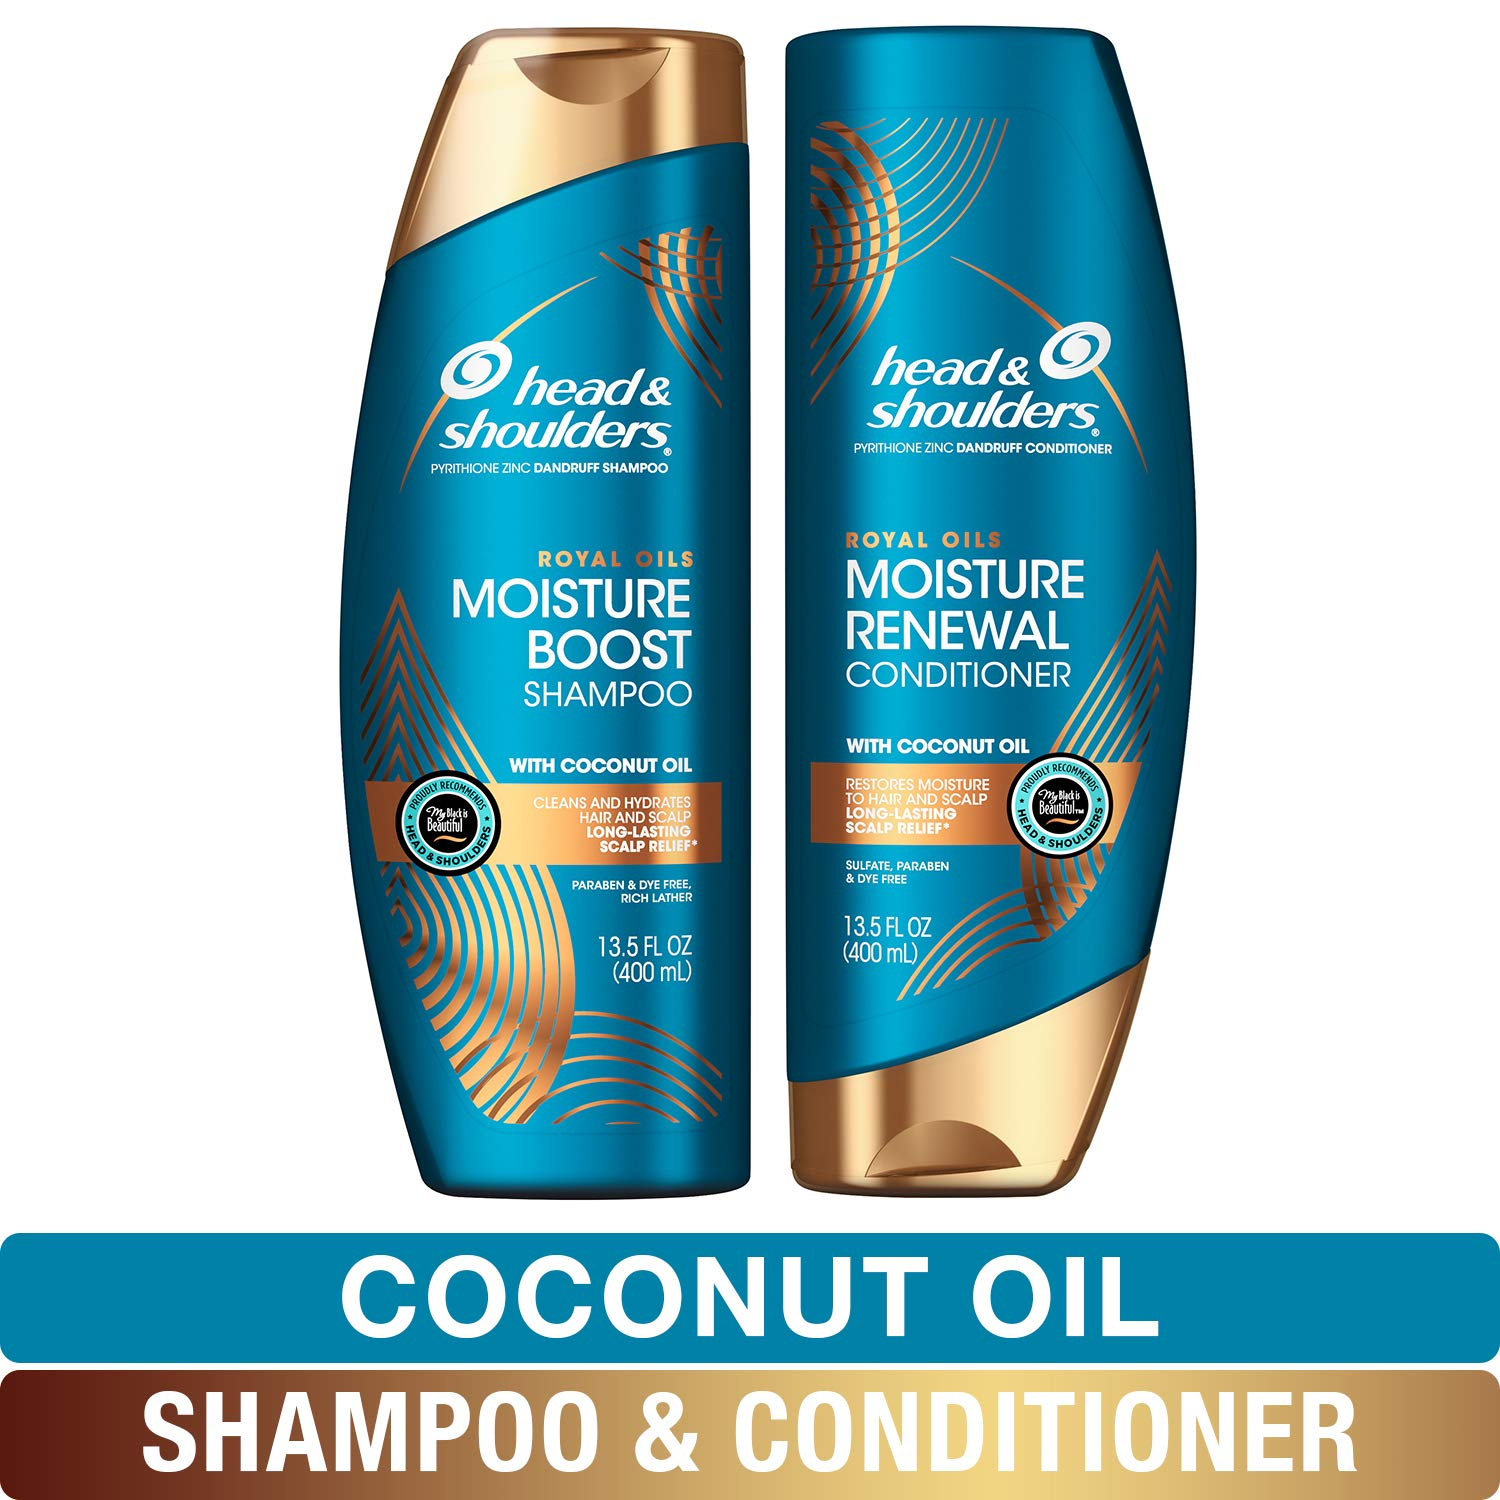 Head and Shoulders Shampoo and Conditioner, Moisture Renewal, Anti Dandruff Treatment and Scalp Care, Royal Oils Collection with Coconut Oil, 27 fl oz, Kit by Head & Shoulders